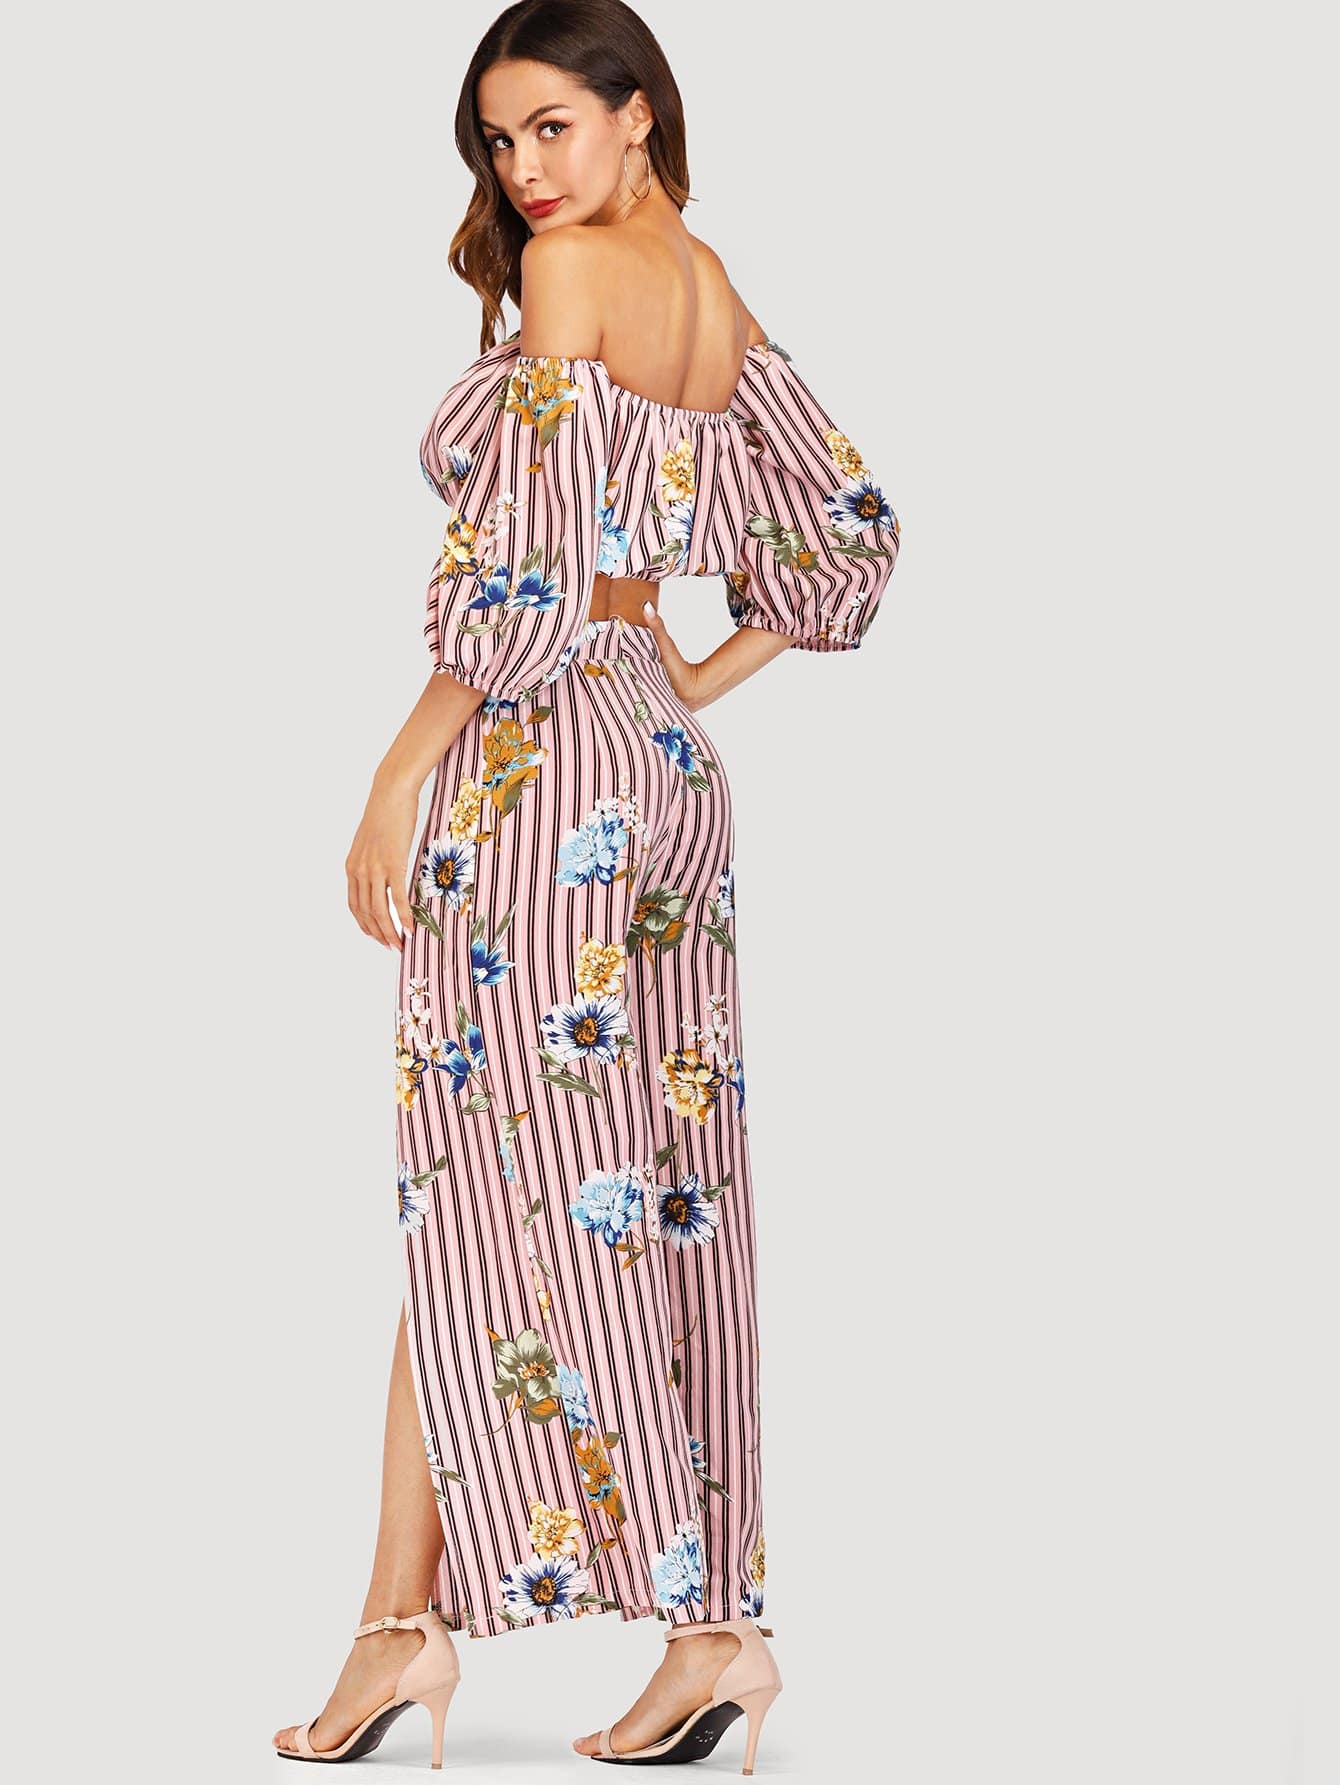 91ffe9ae154924 Off Shoulder Striped Floral Top With Pants